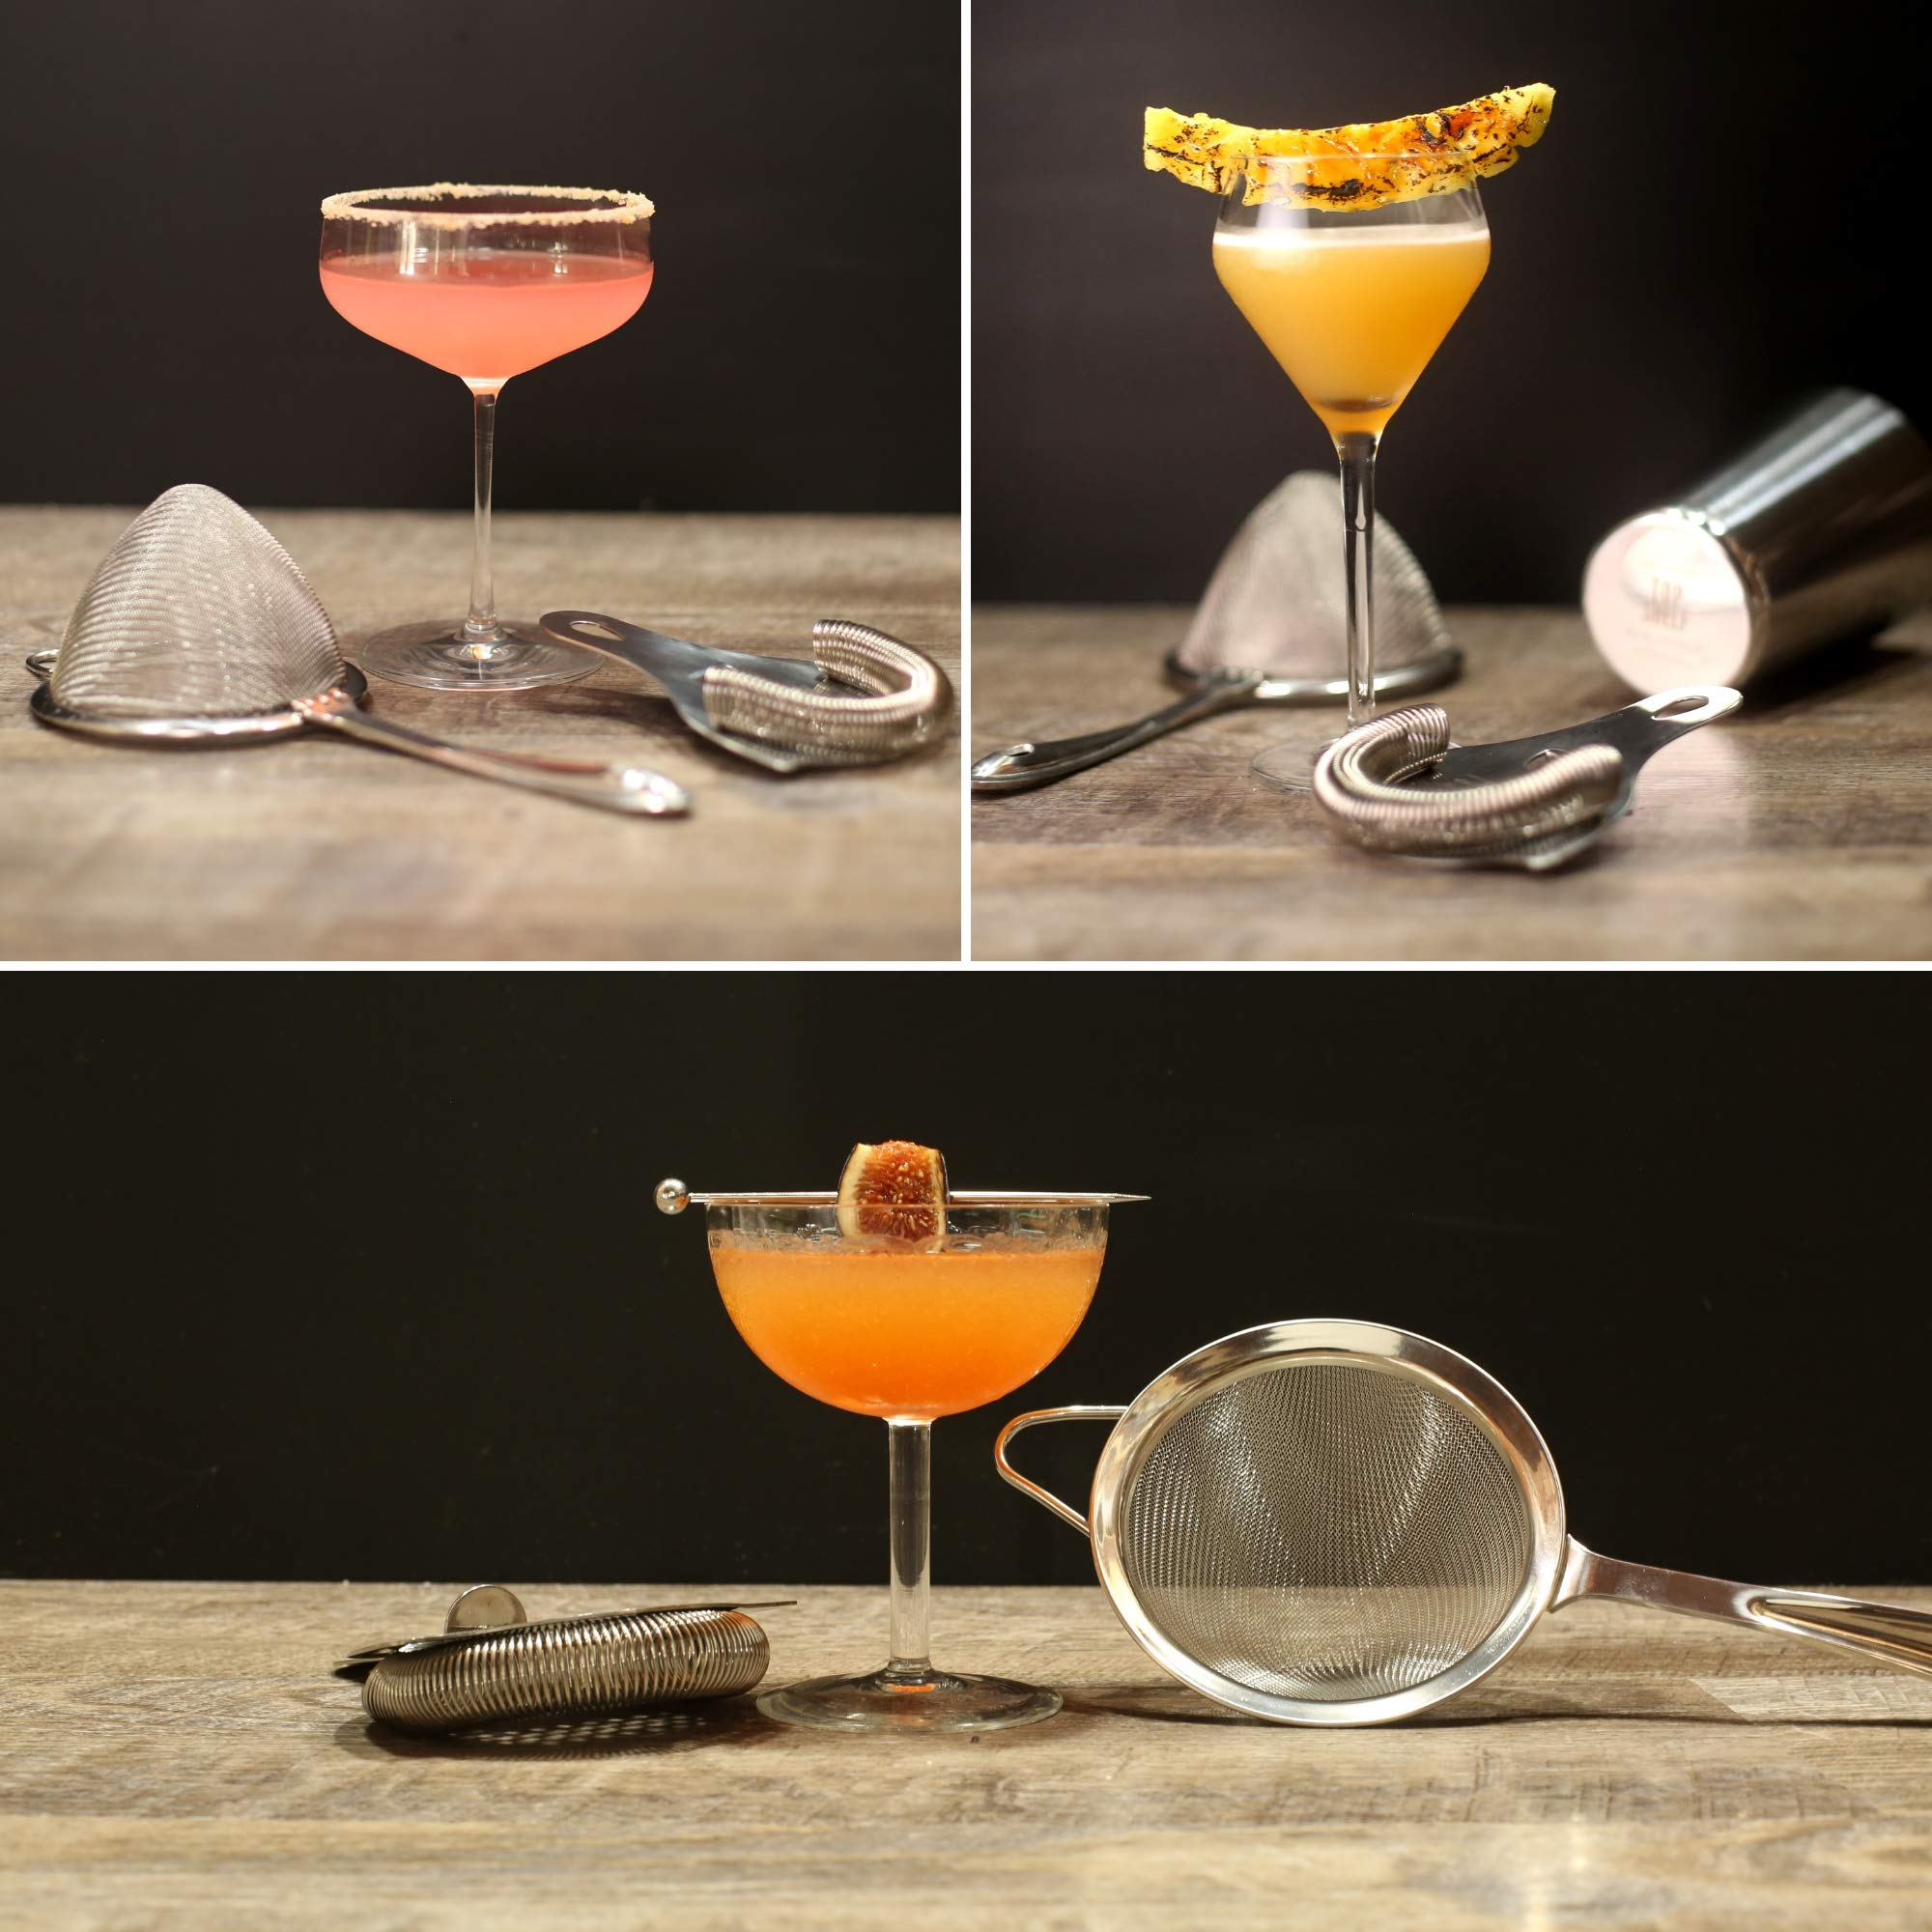 Cocktail Strainer Set: Stainless Steel Hawthorne Strainer, Julep Strainer and Conical Fine-Mesh Strainer by Top Shelf Bar Supply by Top Shelf Bar Supply (Image #7)